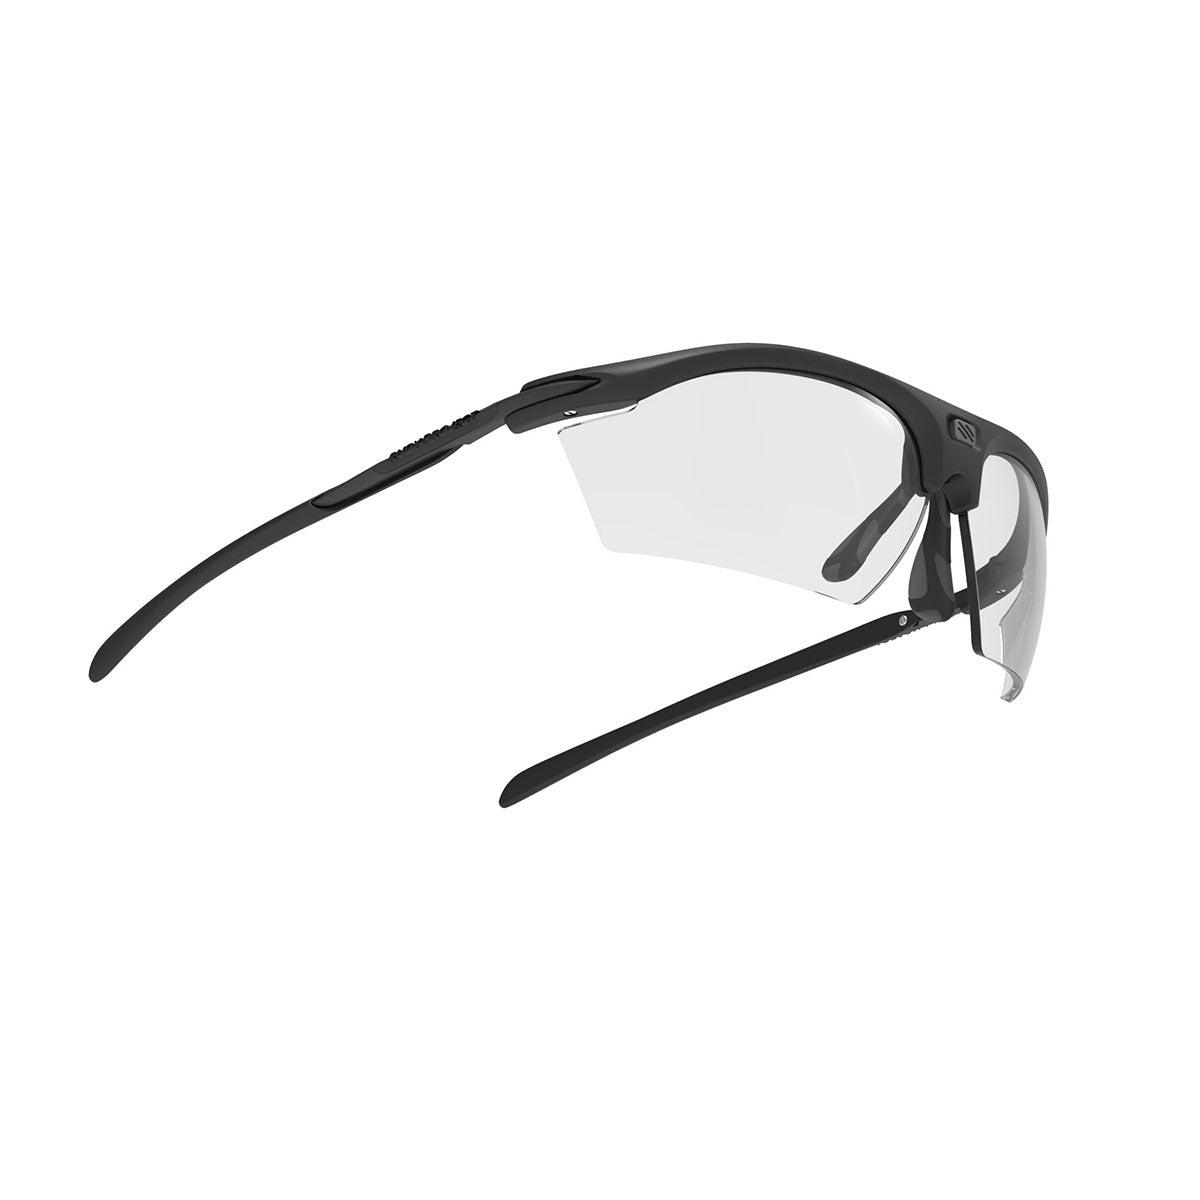 Rudy Project - Rydon - frame color: Stealth Matte Black - lens color: ImpactX-2 Photochromic Clear to Black - photo angle: Bottom Front Angle Variant Hover Image